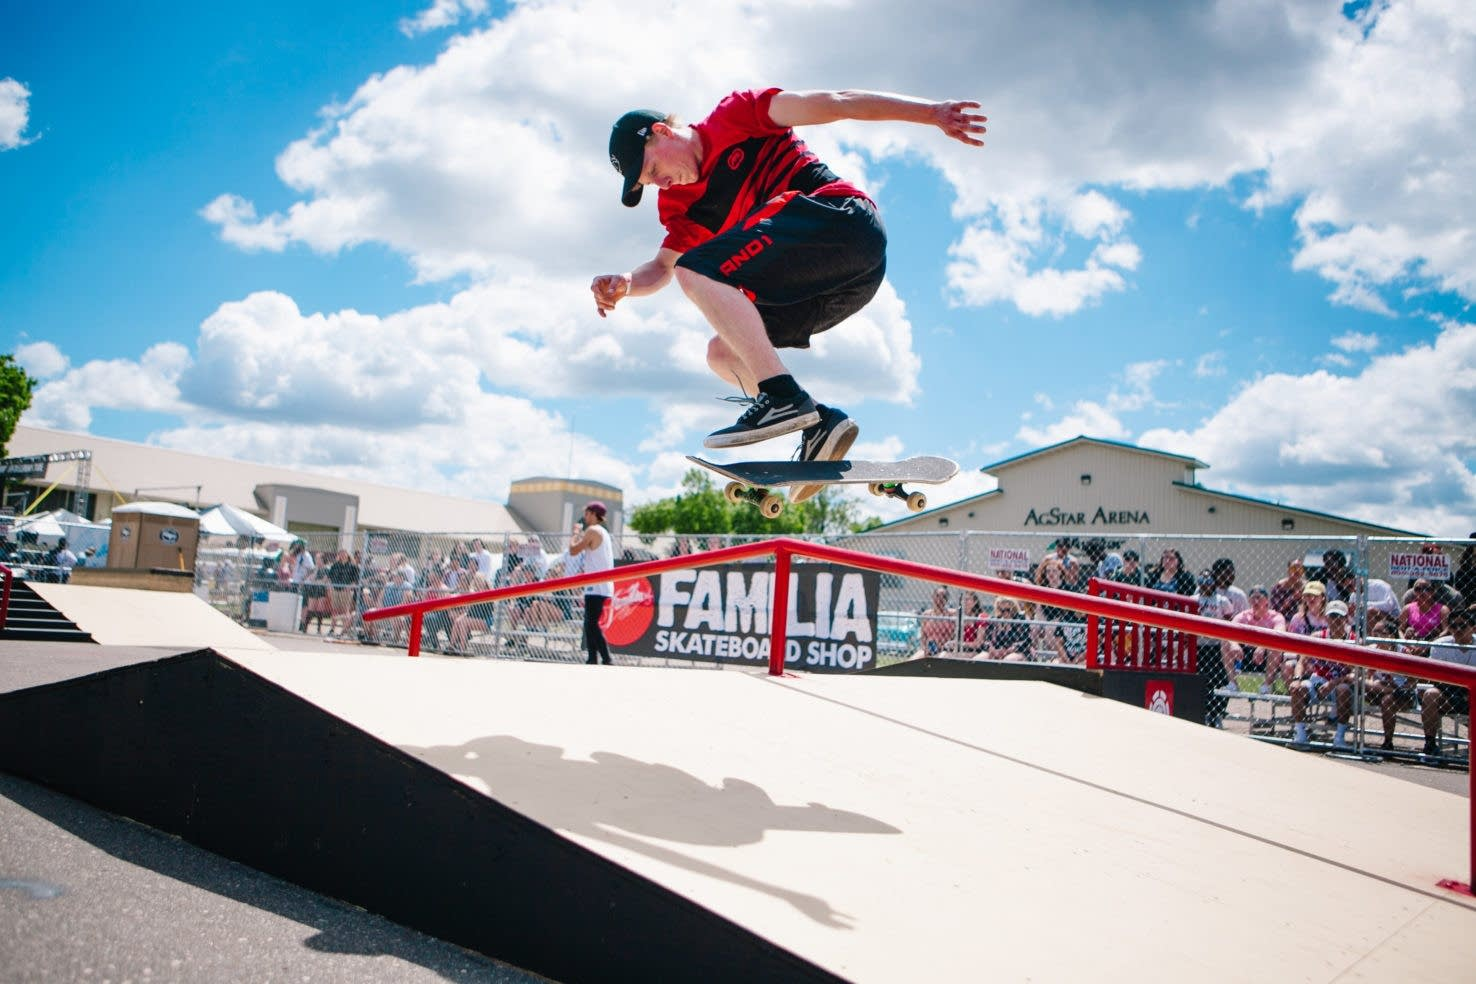 A skateboarder at the Soundset Skateboard Showdown in 2017.